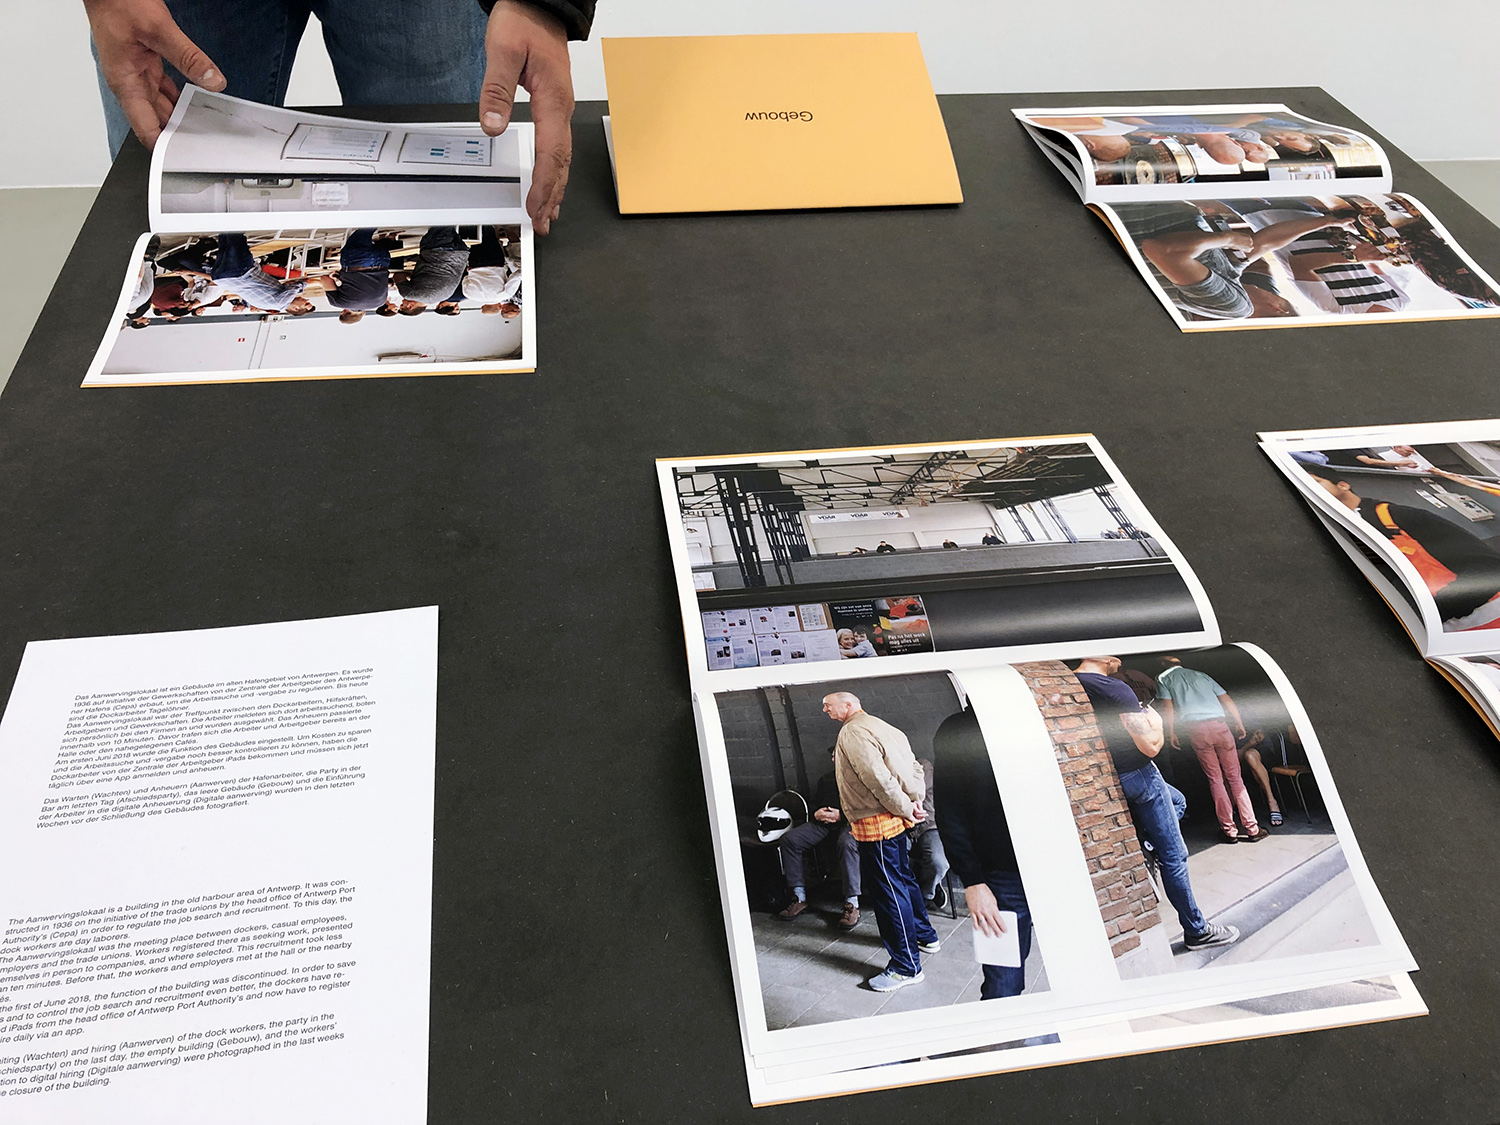 Exhibition view Tender Buttons, curated by Nadja Quante, Anna Voswinckel, Künstlerhaus Bremen 2019<br /> Aanwervingslokaal, 5 magazines and text on a table<br /> foto: Manuel Meyer